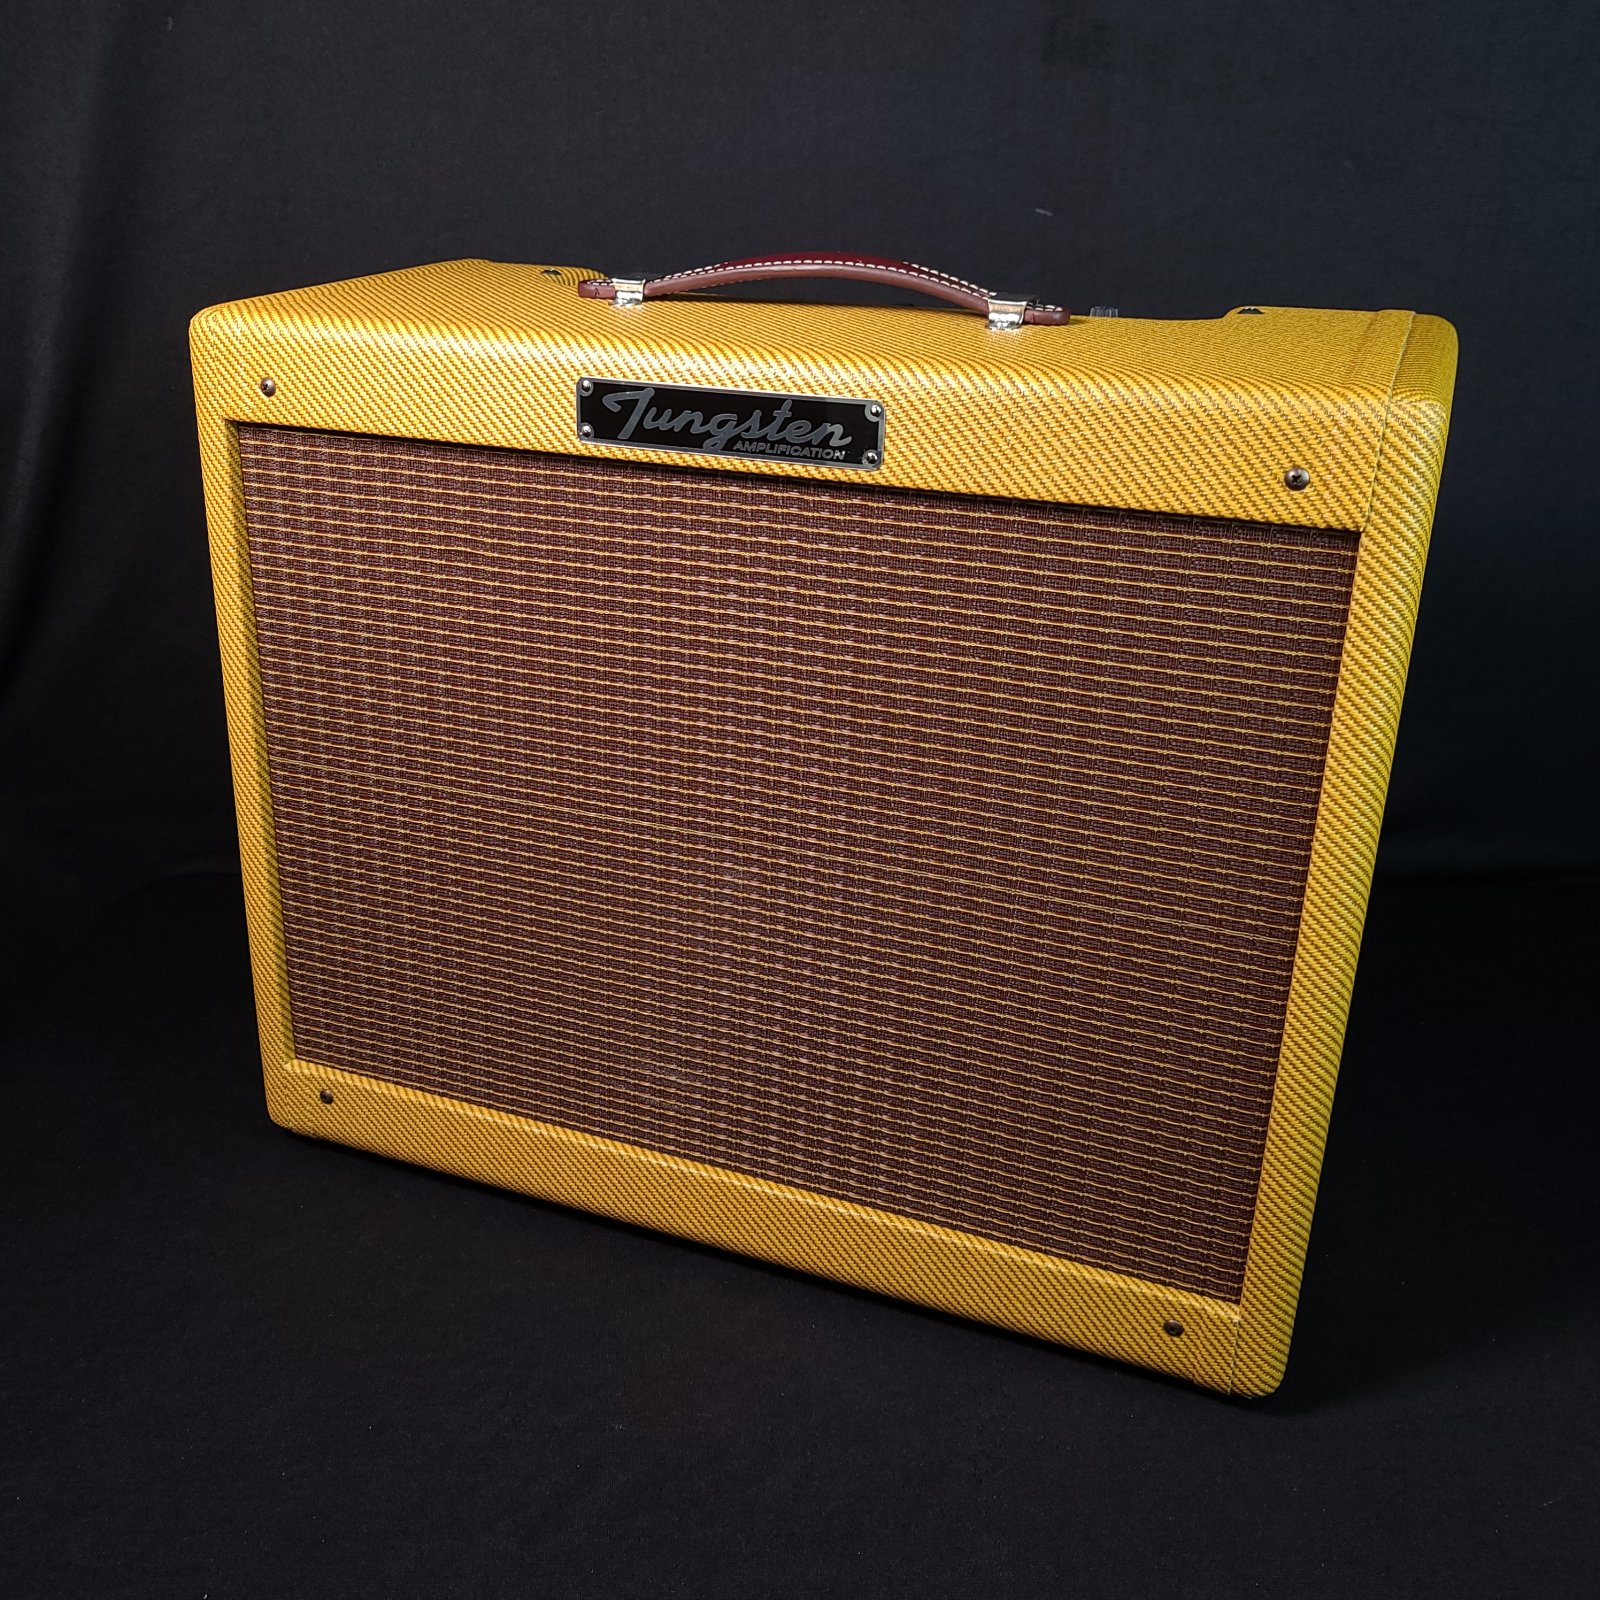 USED Tungsten Oxnard 12 Tweed Electric Guitar Amplifier w/ Cover